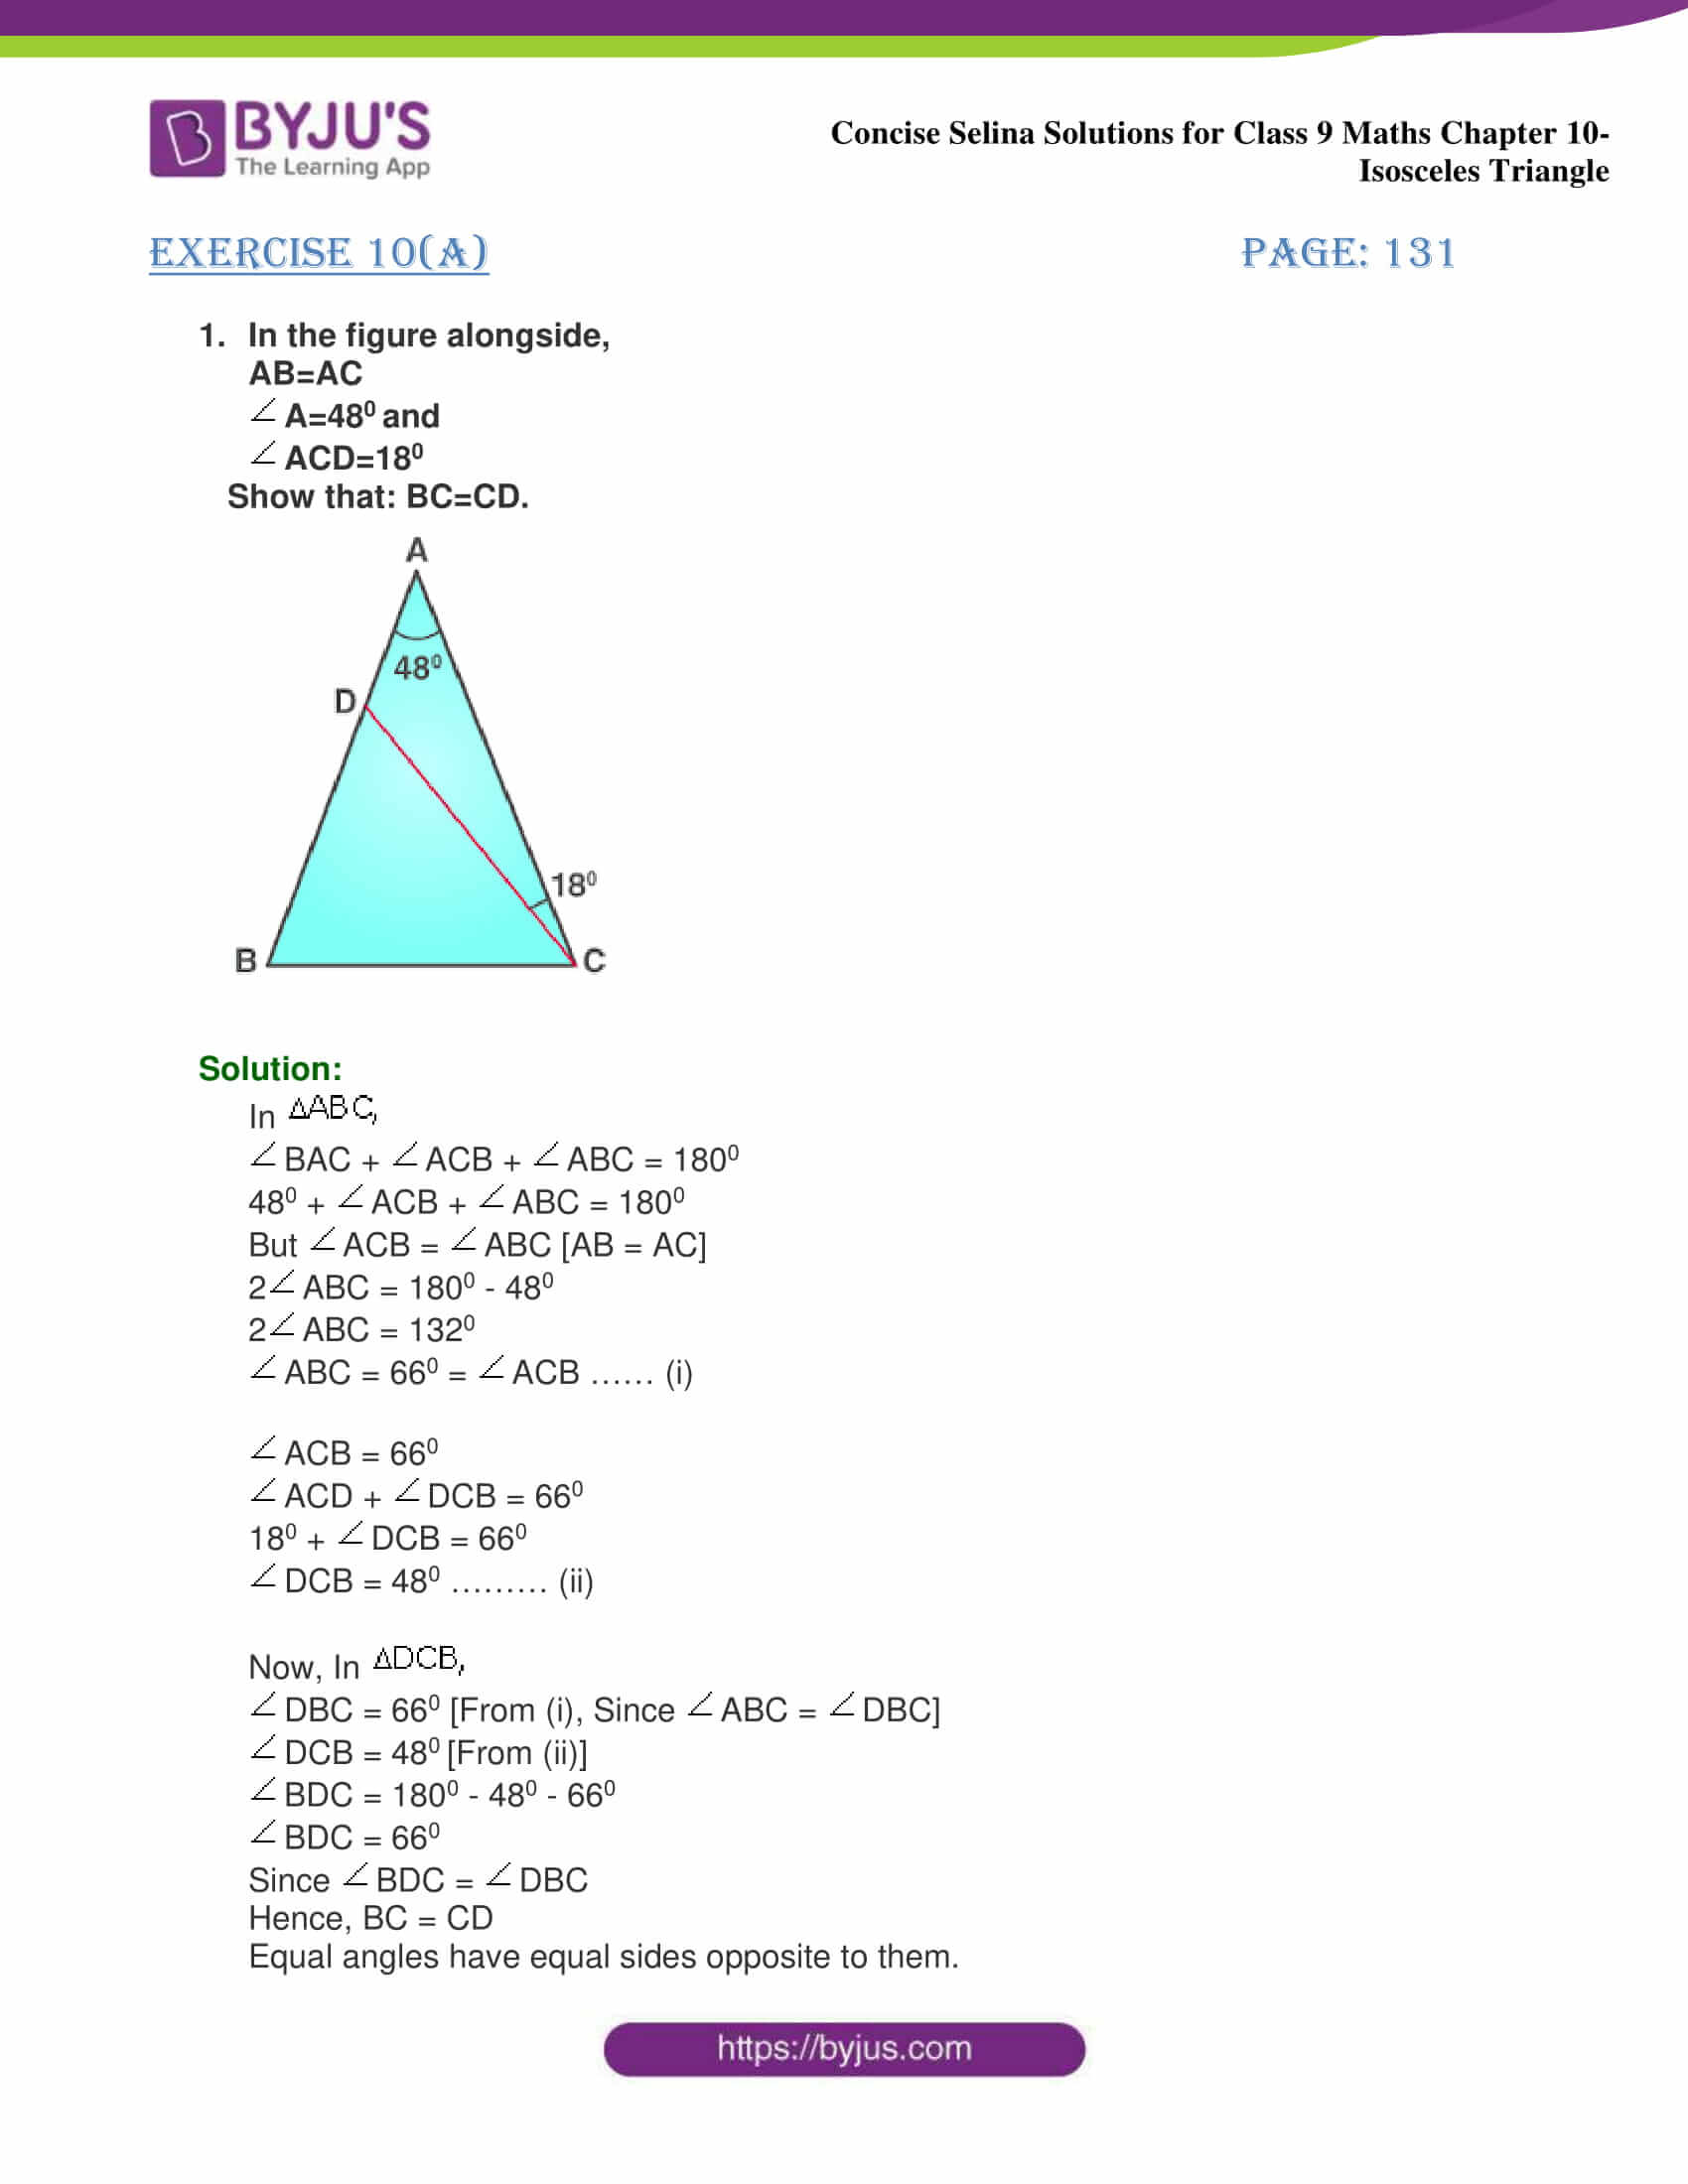 selina Solutions for Class 9 Maths Chapter 10 part 01